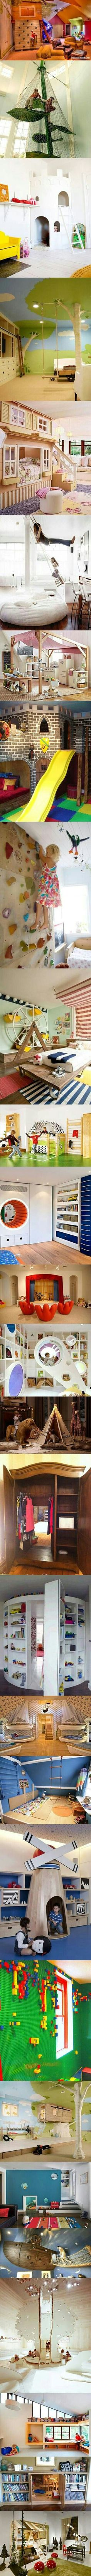 best cool furniture images on pinterest in diy ideas for